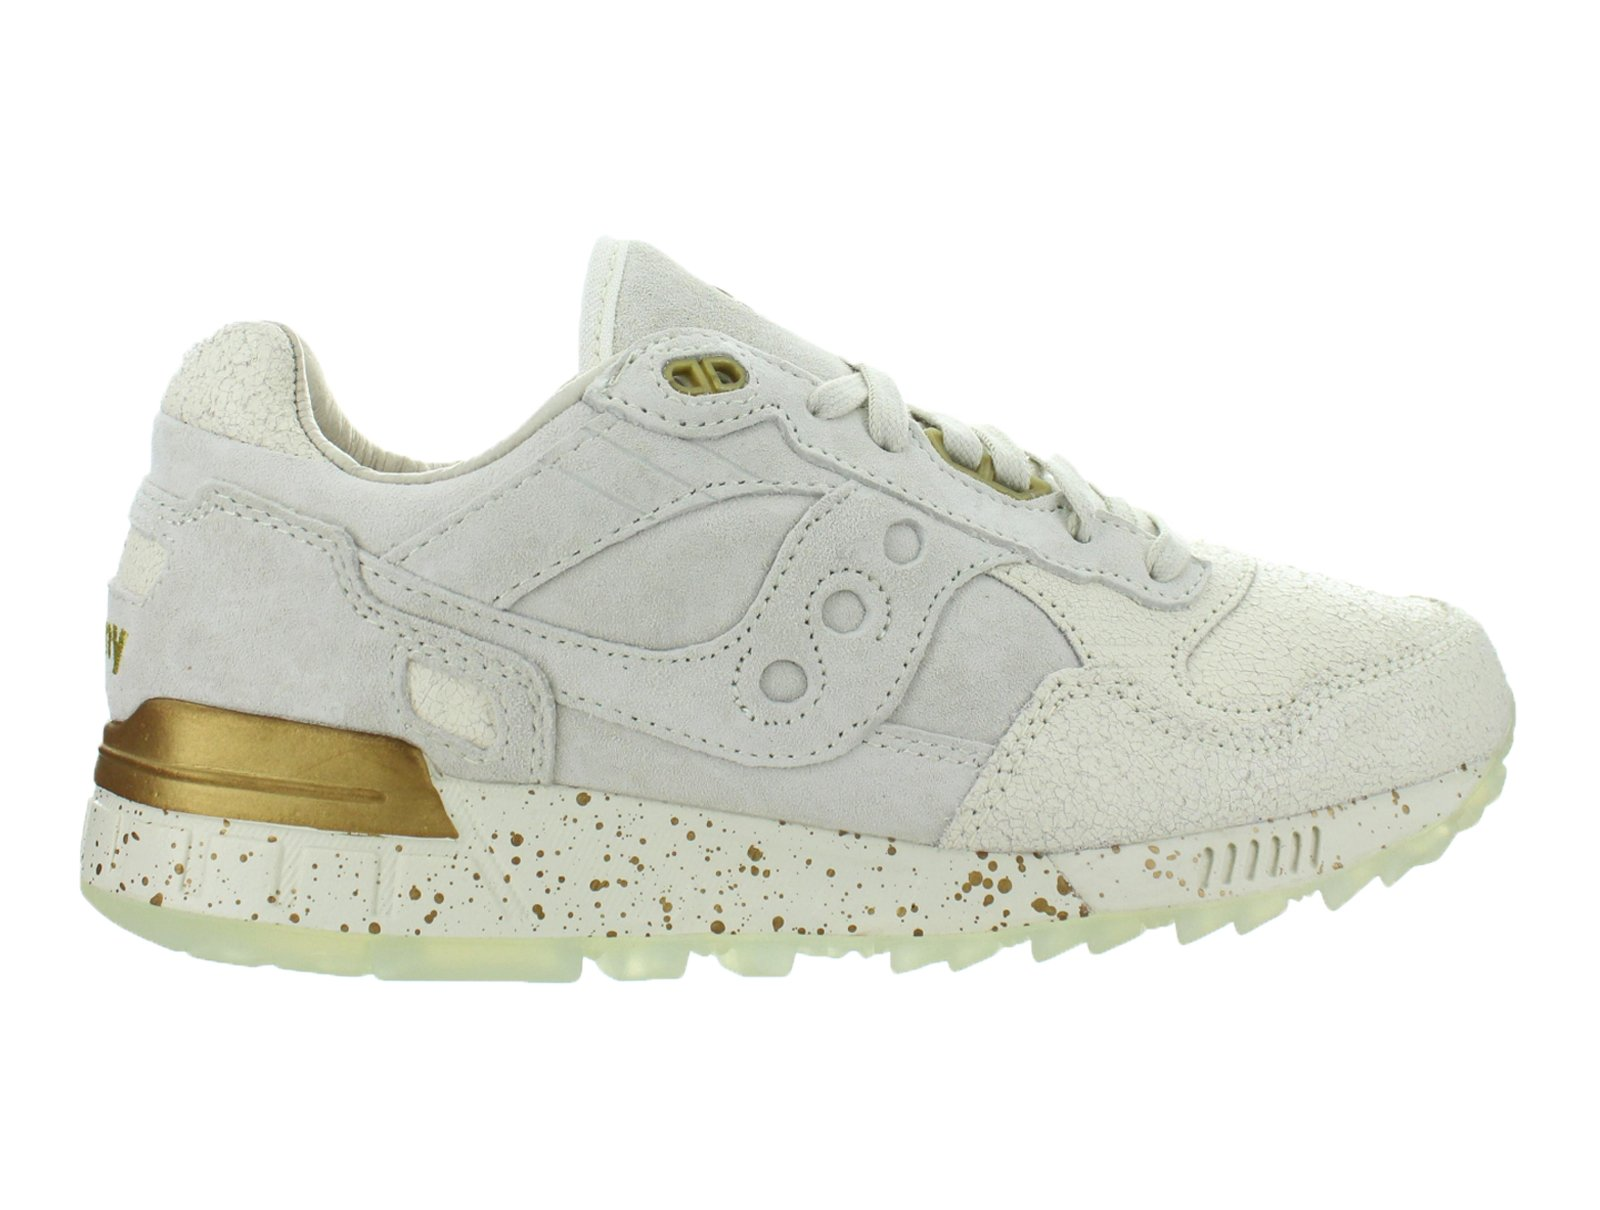 Click here to buy Mens Saucony Shadow 5000 Chocolate Pack Off White S70311-1.